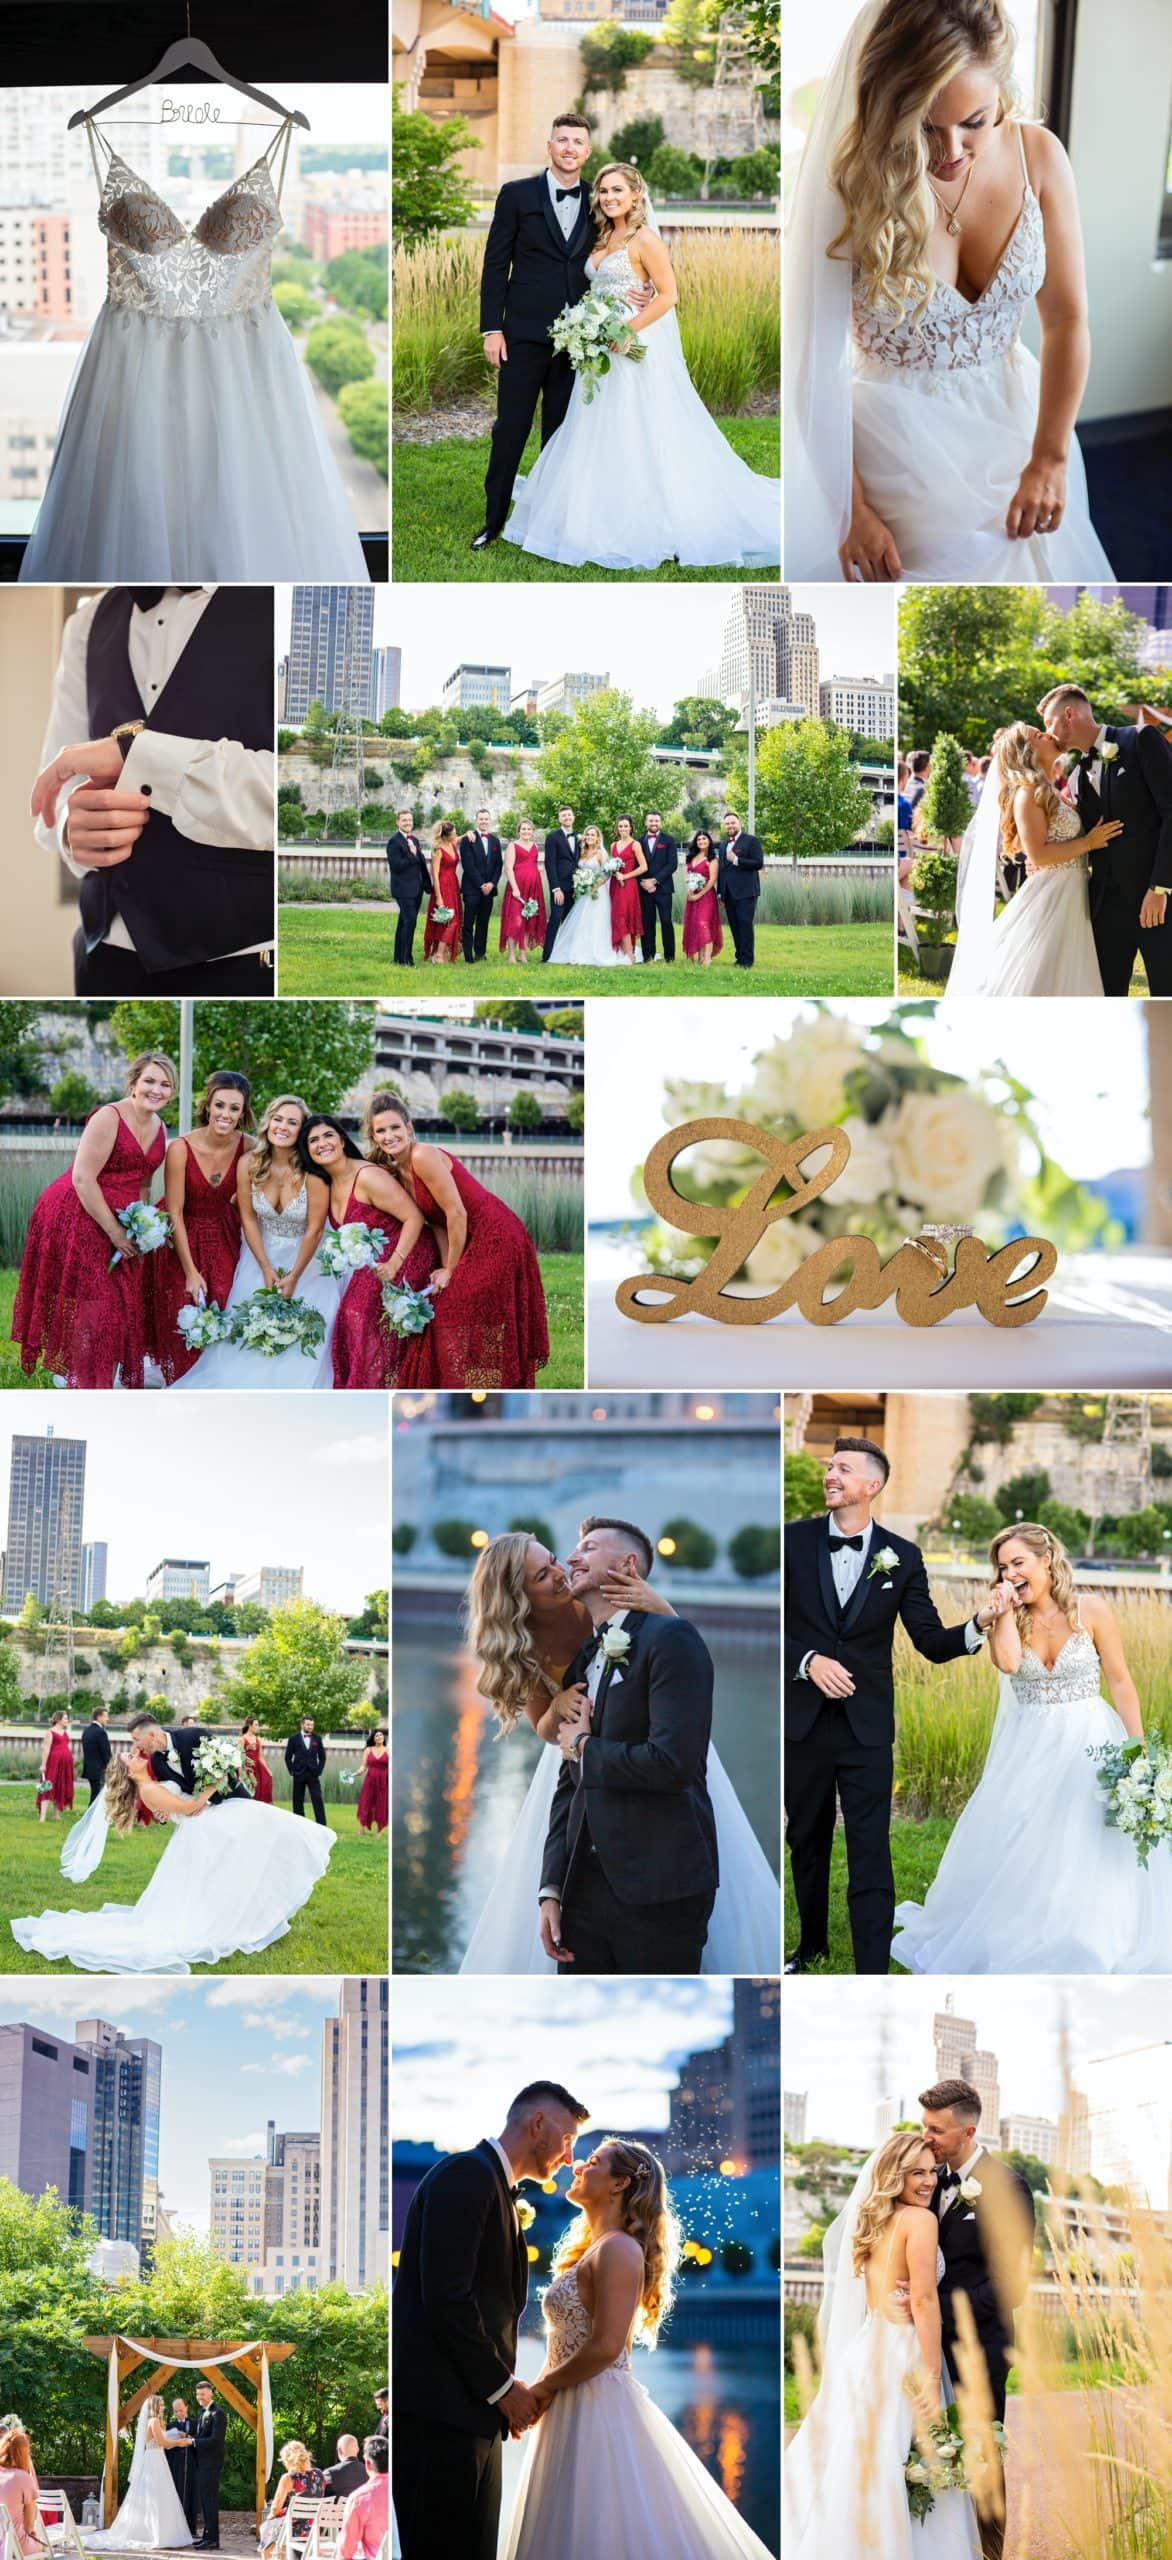 Saint Paul wedding photography collage, taken and edited by Minnesota photographers Allison Million and Rachel Lahlum.